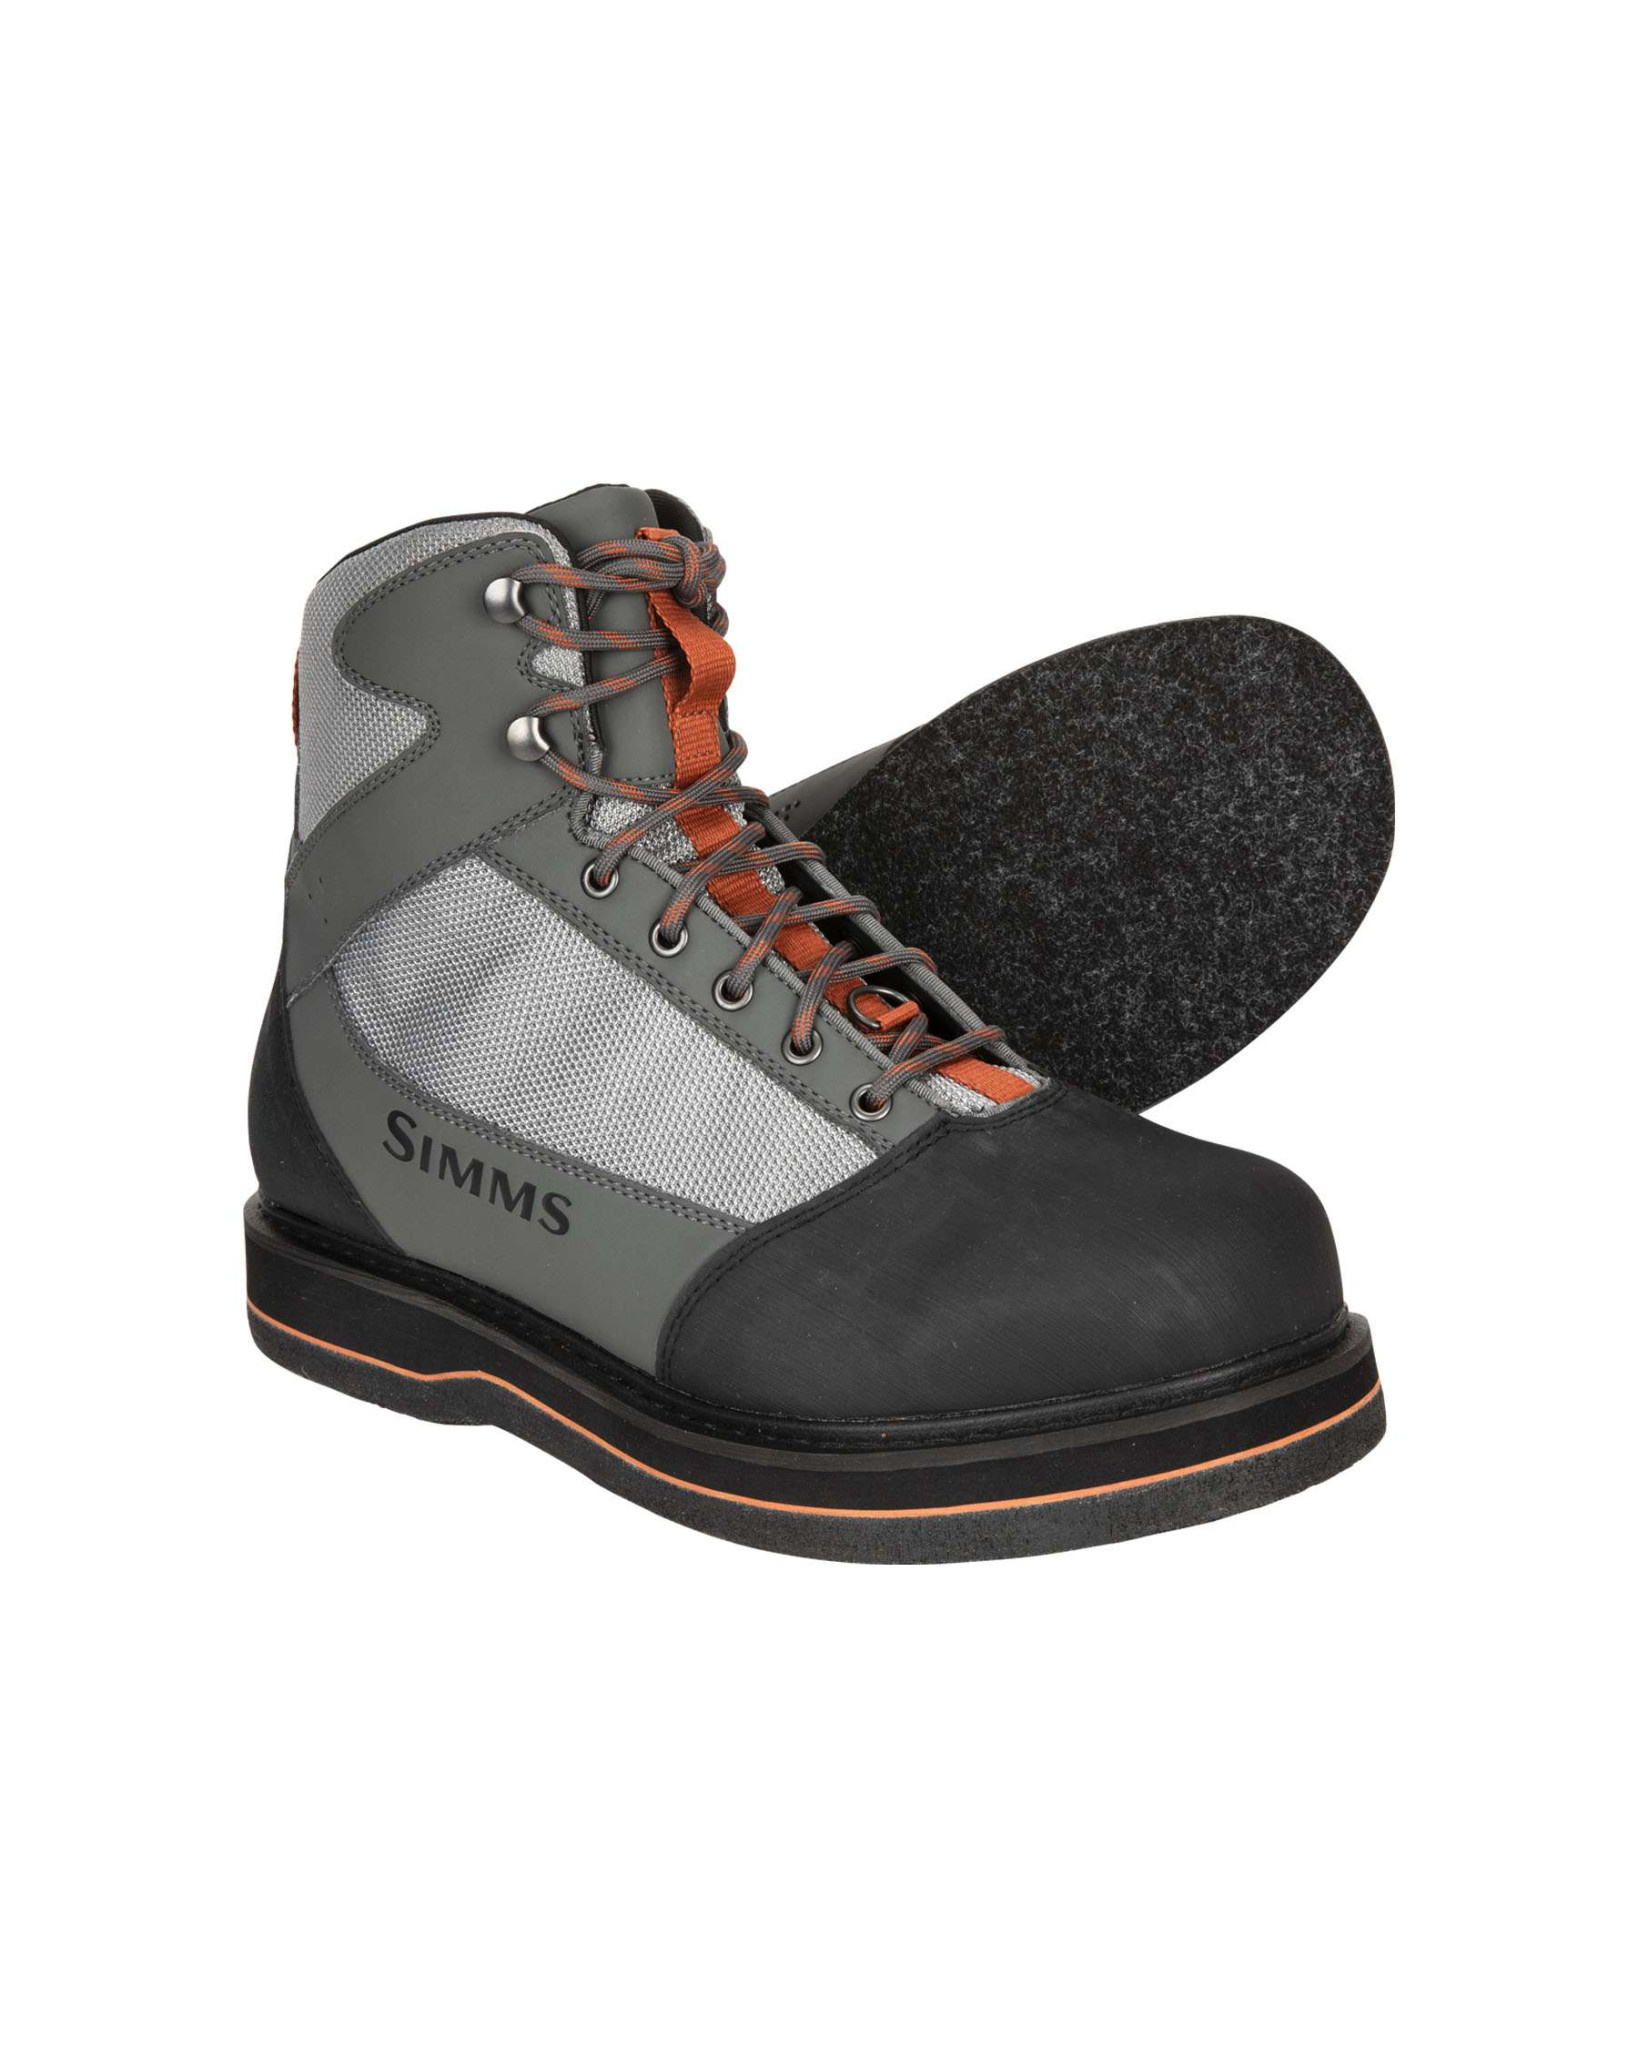 Simms Tributary Boot Striker Grey - Felt